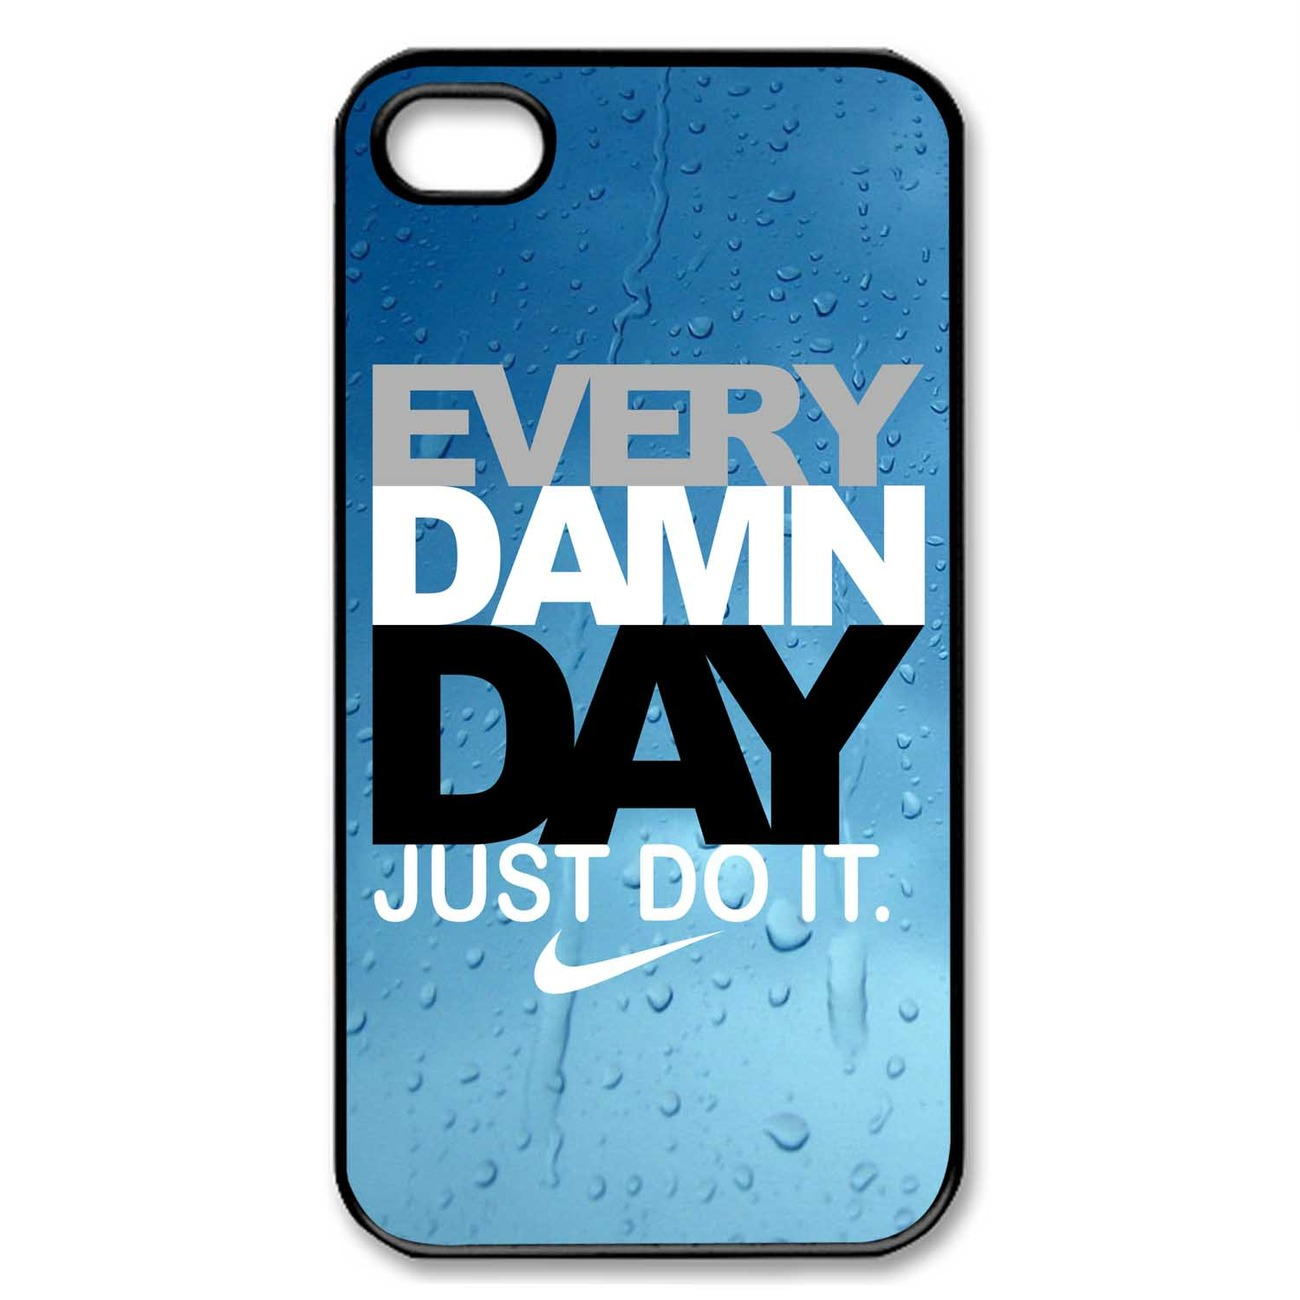 Every Damn Day Just Do It Nike Wallpaper Pin Just A Lego Tachik...